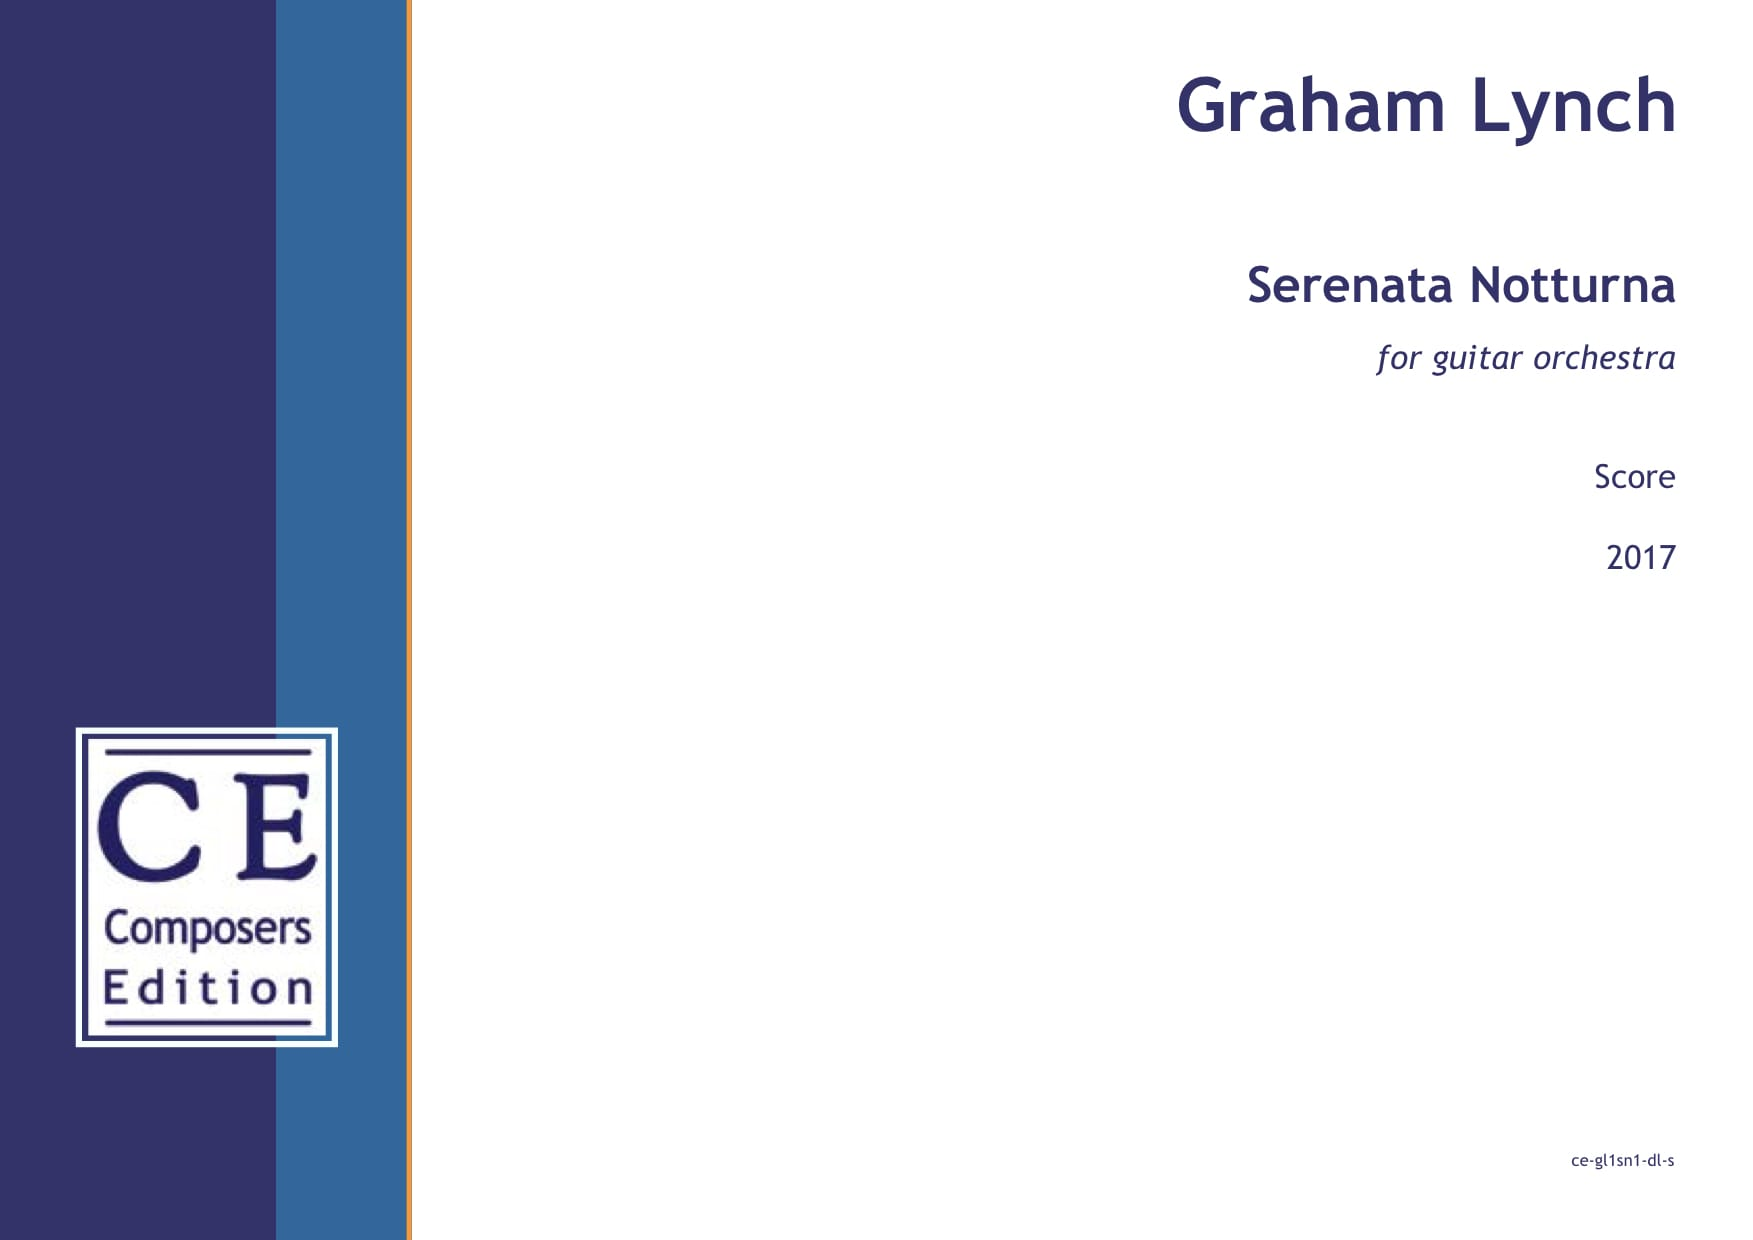 Graham Lynch: Serenata Notturna (guitar orchestra version) for guitar orchestra